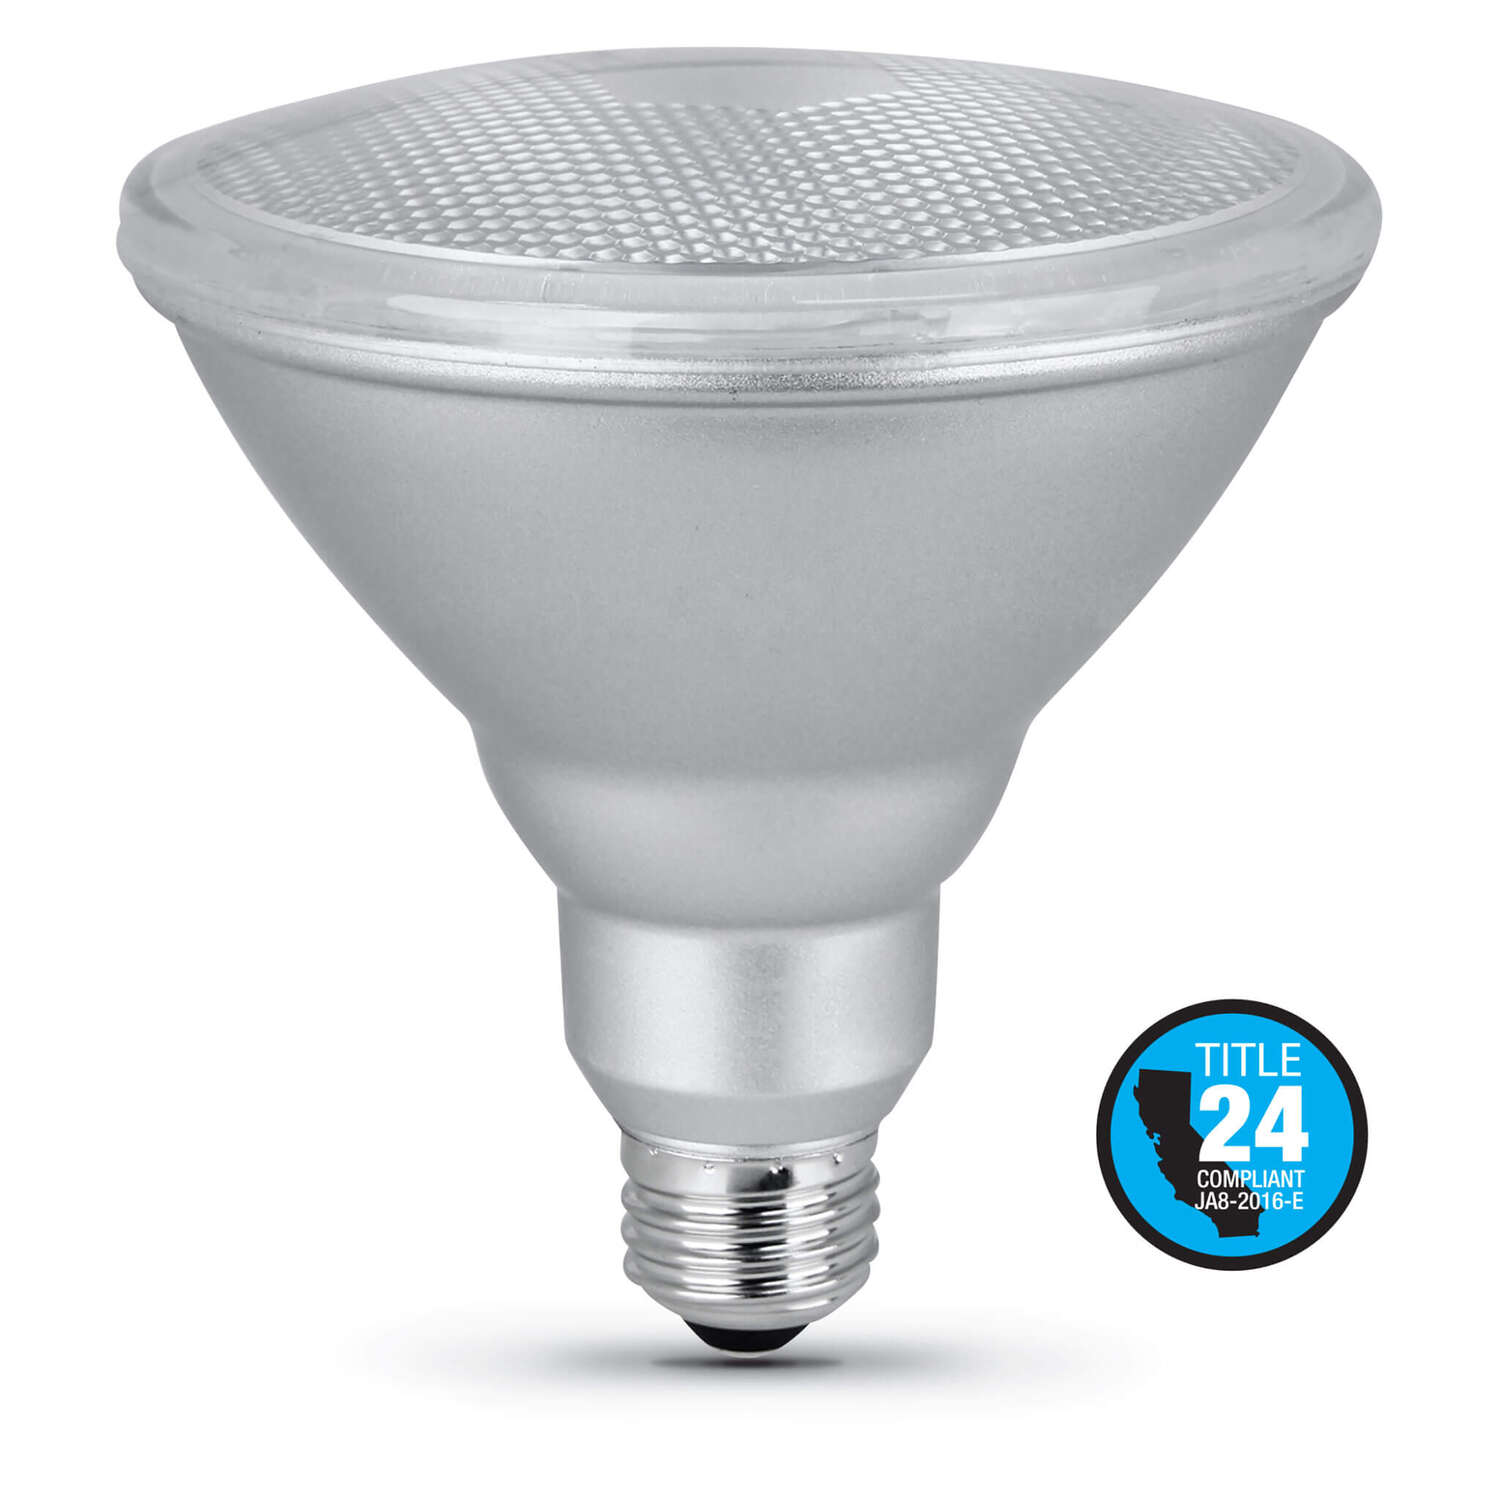 Feit Electric  Enhance  PAR38  E26 (Medium)  LED Bulb  Daylight  90 Watt Equivalence 1 pk